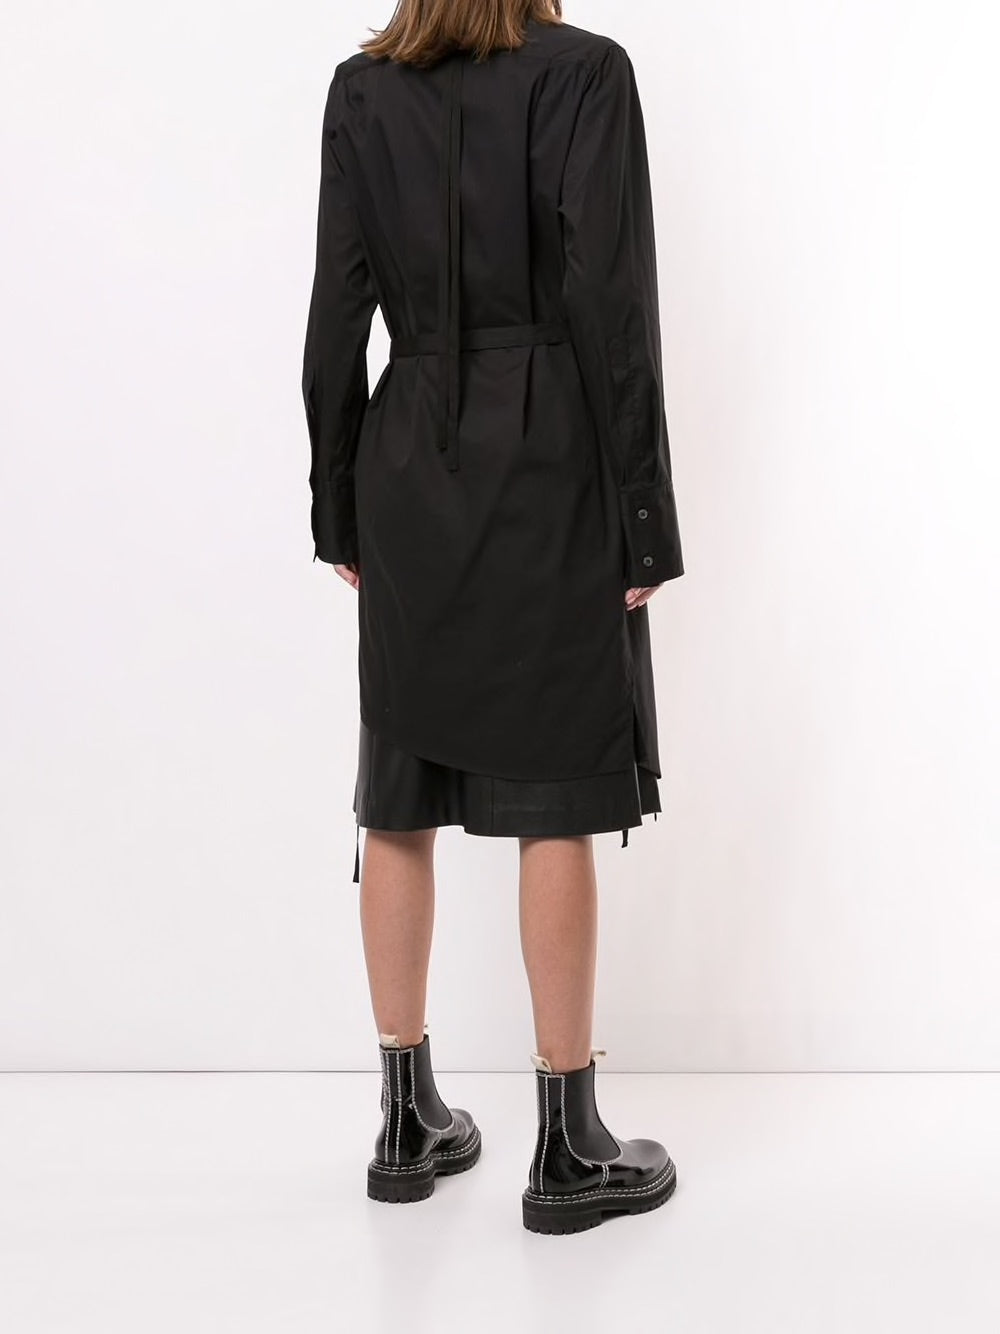 ANN DEMEULEMEESTER WOMEN TUXEDO SHIRT DRESS